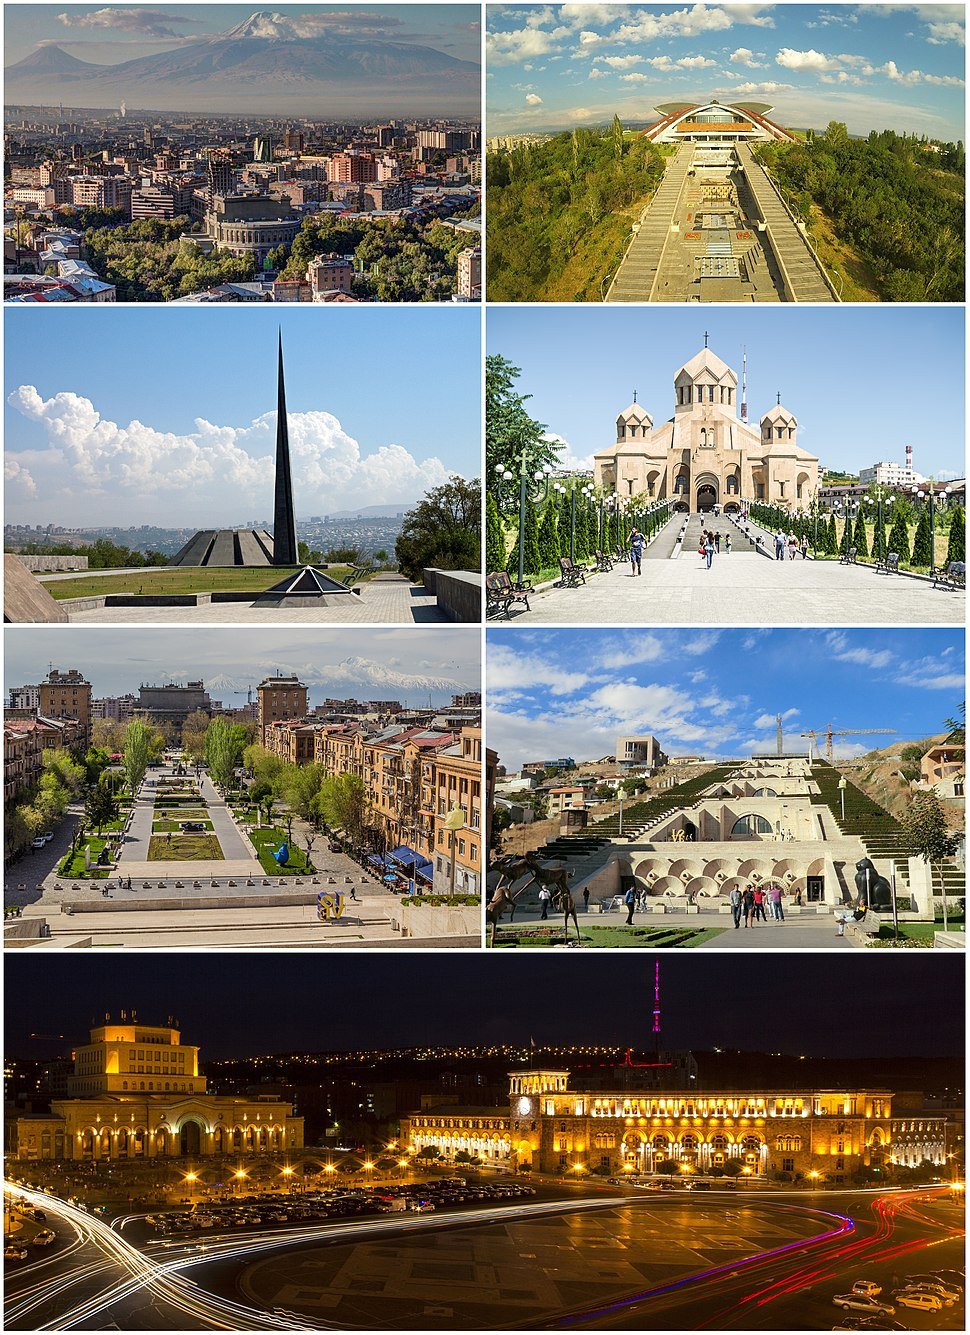 From top left: Yerevan skyline with Mount Ararat • Karen Demirchyan Complex • Tsitsernakaberd Genocide Memorial • Saint Gregory Cathedral • Tamanyan Street and the Yerevan Opera • Cafesjian Museum at the Cascade • Republic Square at night